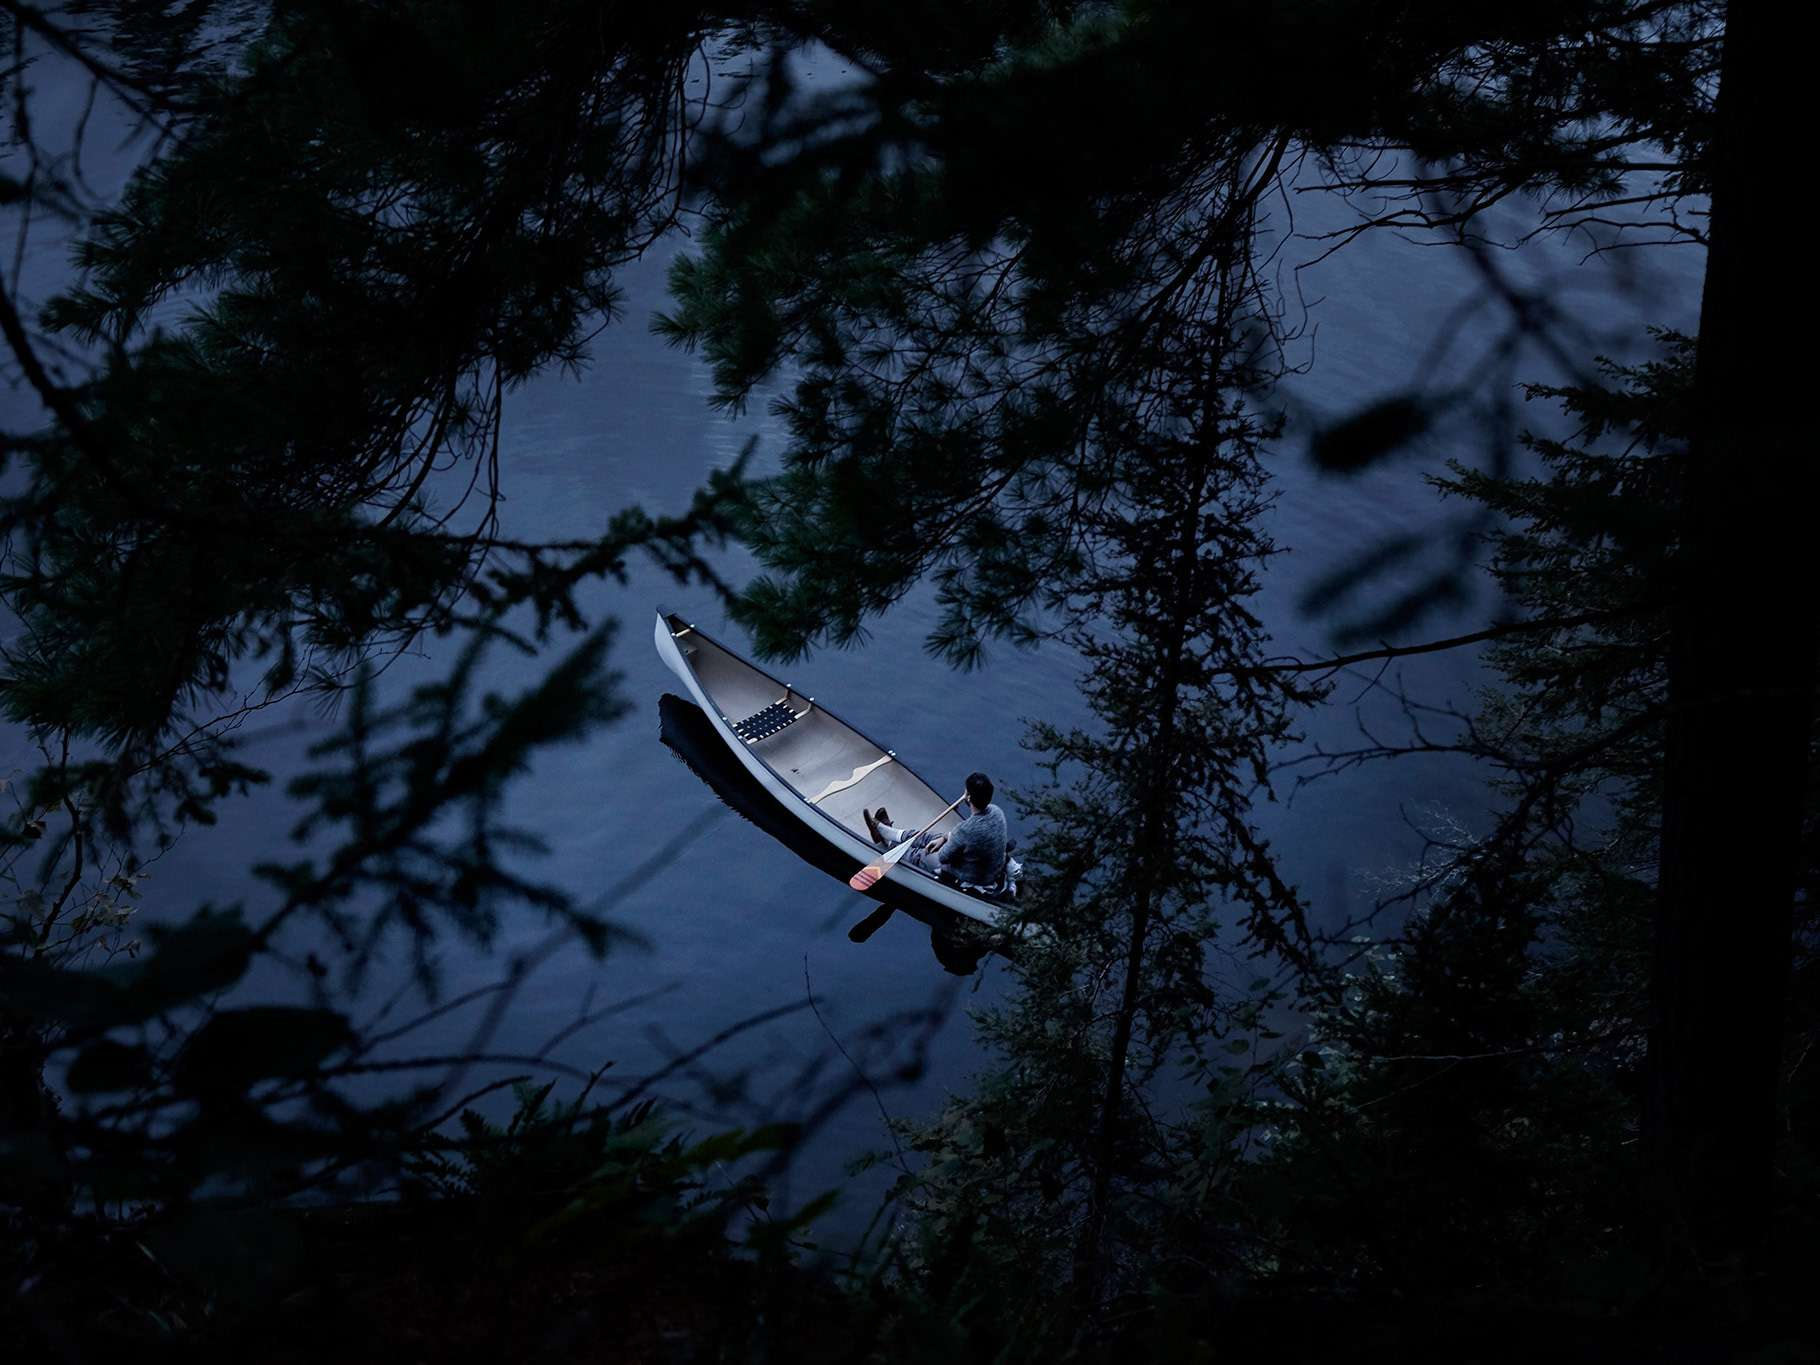 topview from between tree branches of man alone in his canoe on calm water resting and observing his surroundings by Guillaume Simoneau in Abitibi